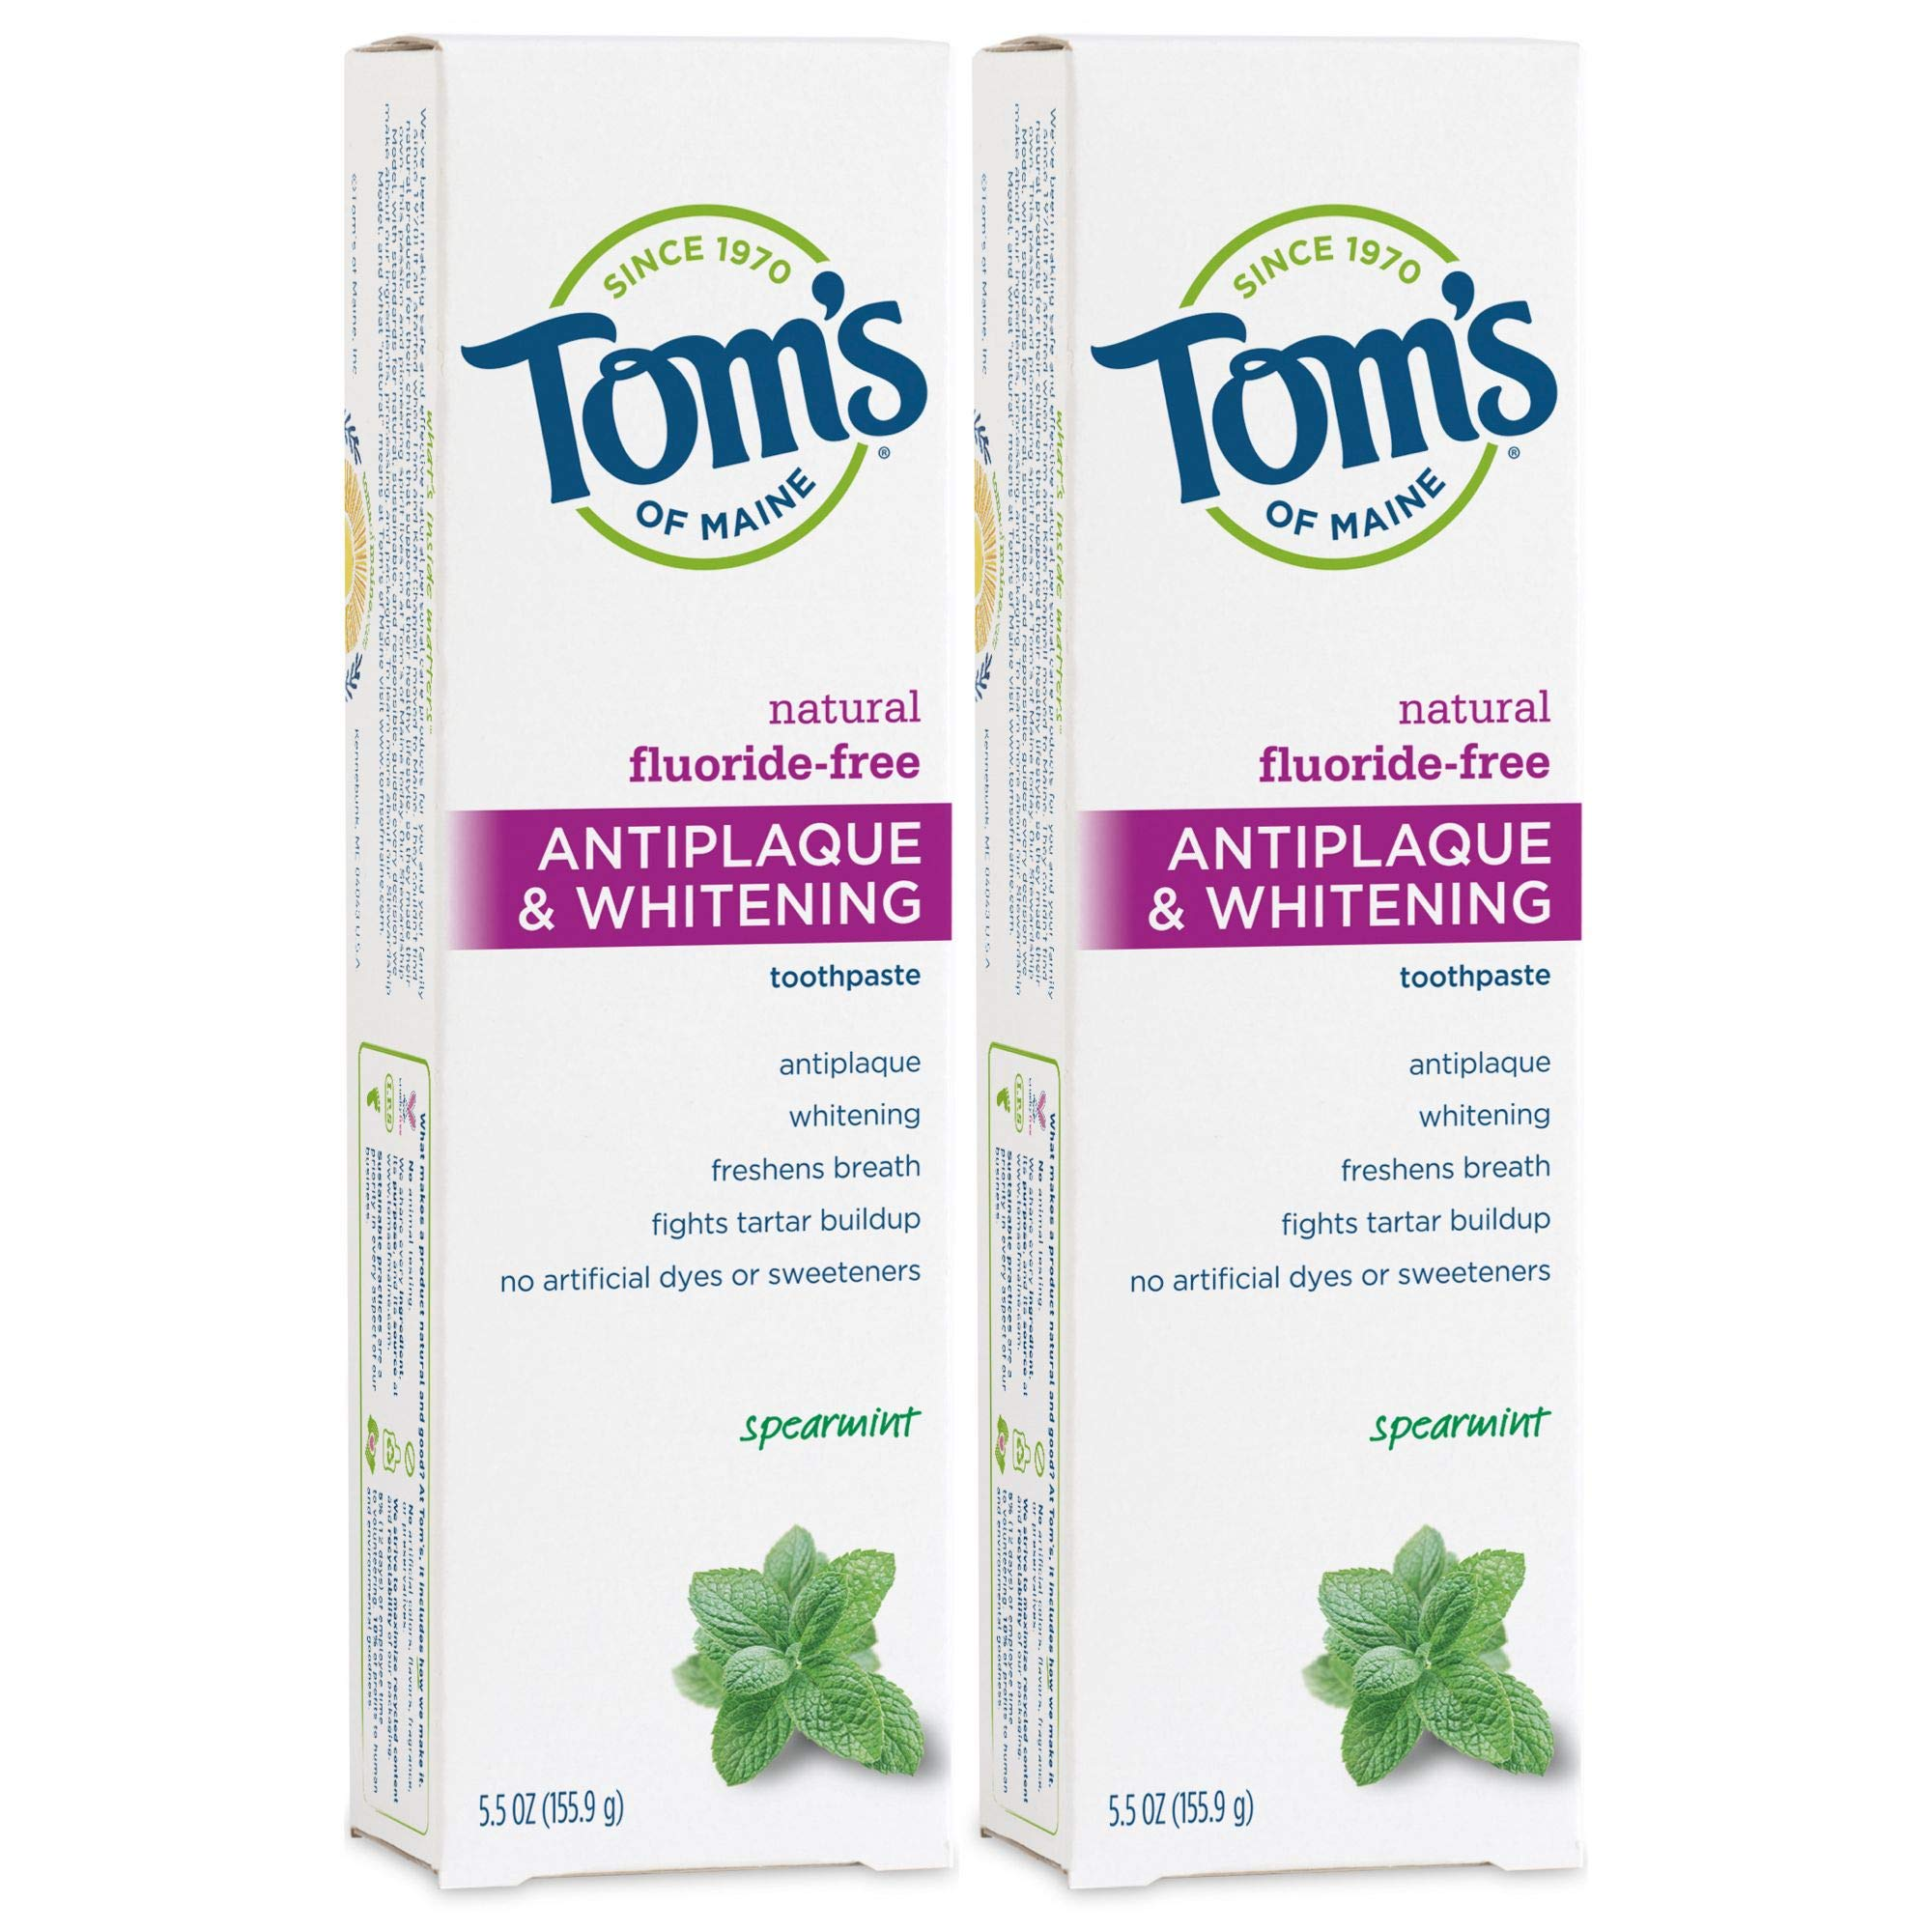 Tom's of Maine Fluoride-Free Antiplaque & Whitening Natural Toothpaste, Spearmint, 5.5 oz. 2-Pack